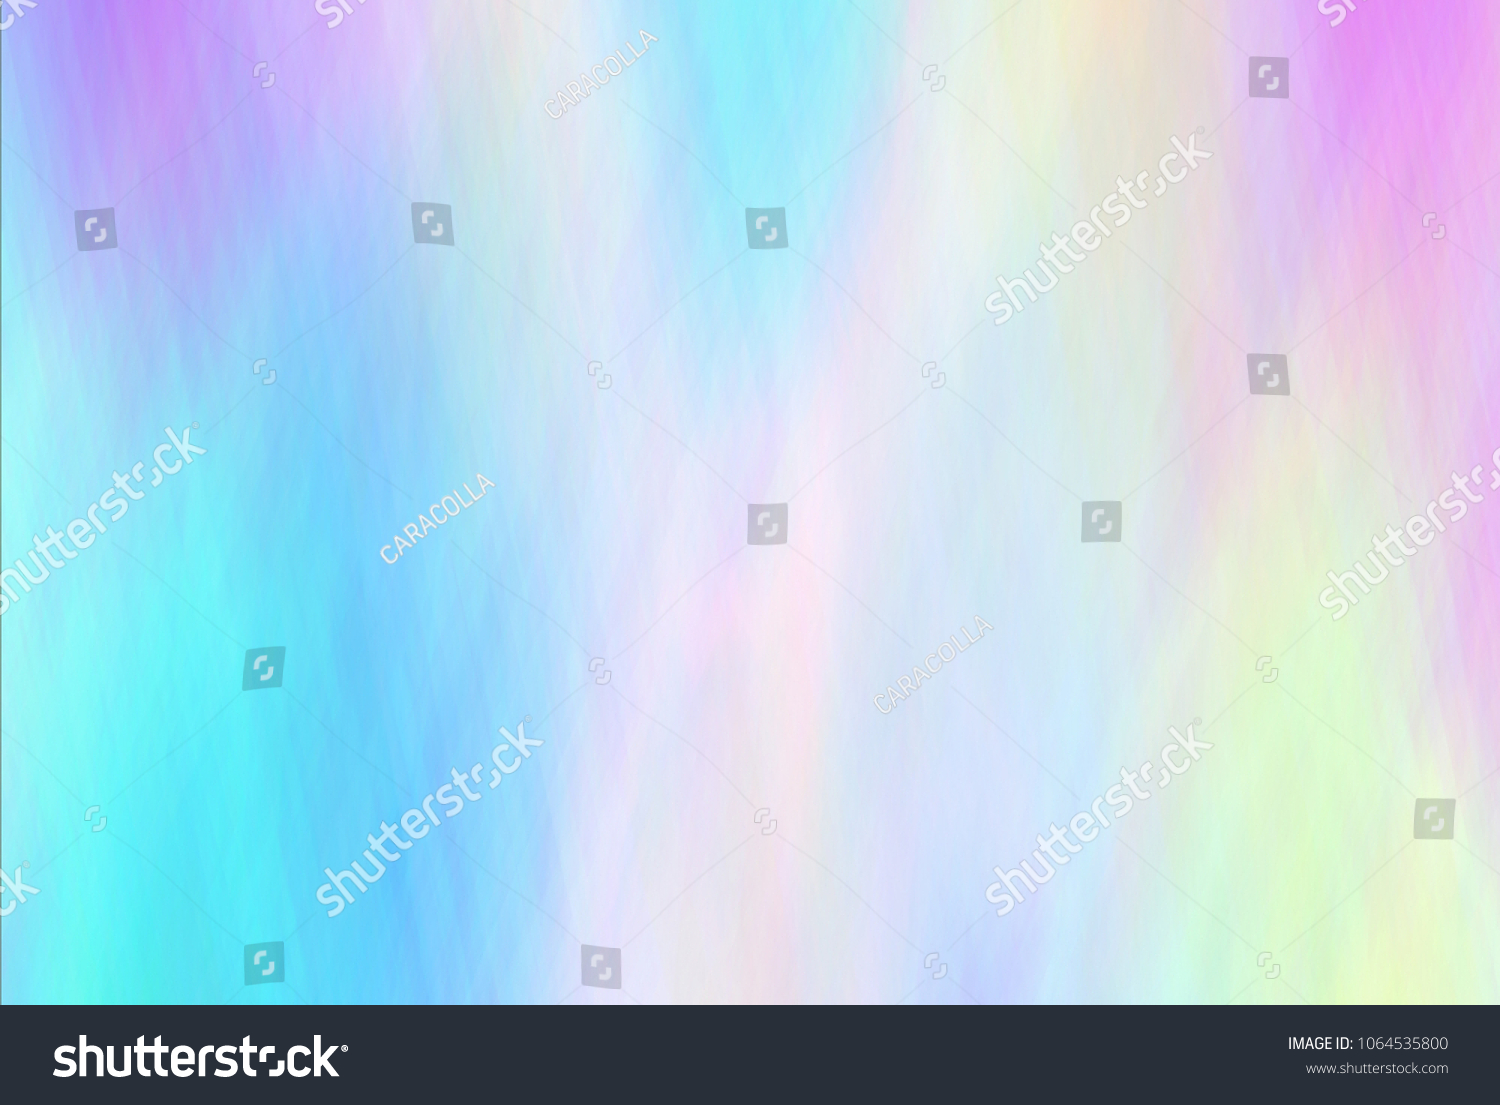 Punchy pastel trendy background. Holographic Foil. Wonderful magic retro 80s, 90s background. Very beautiful iridescent  wallpaper. Chameleon paper